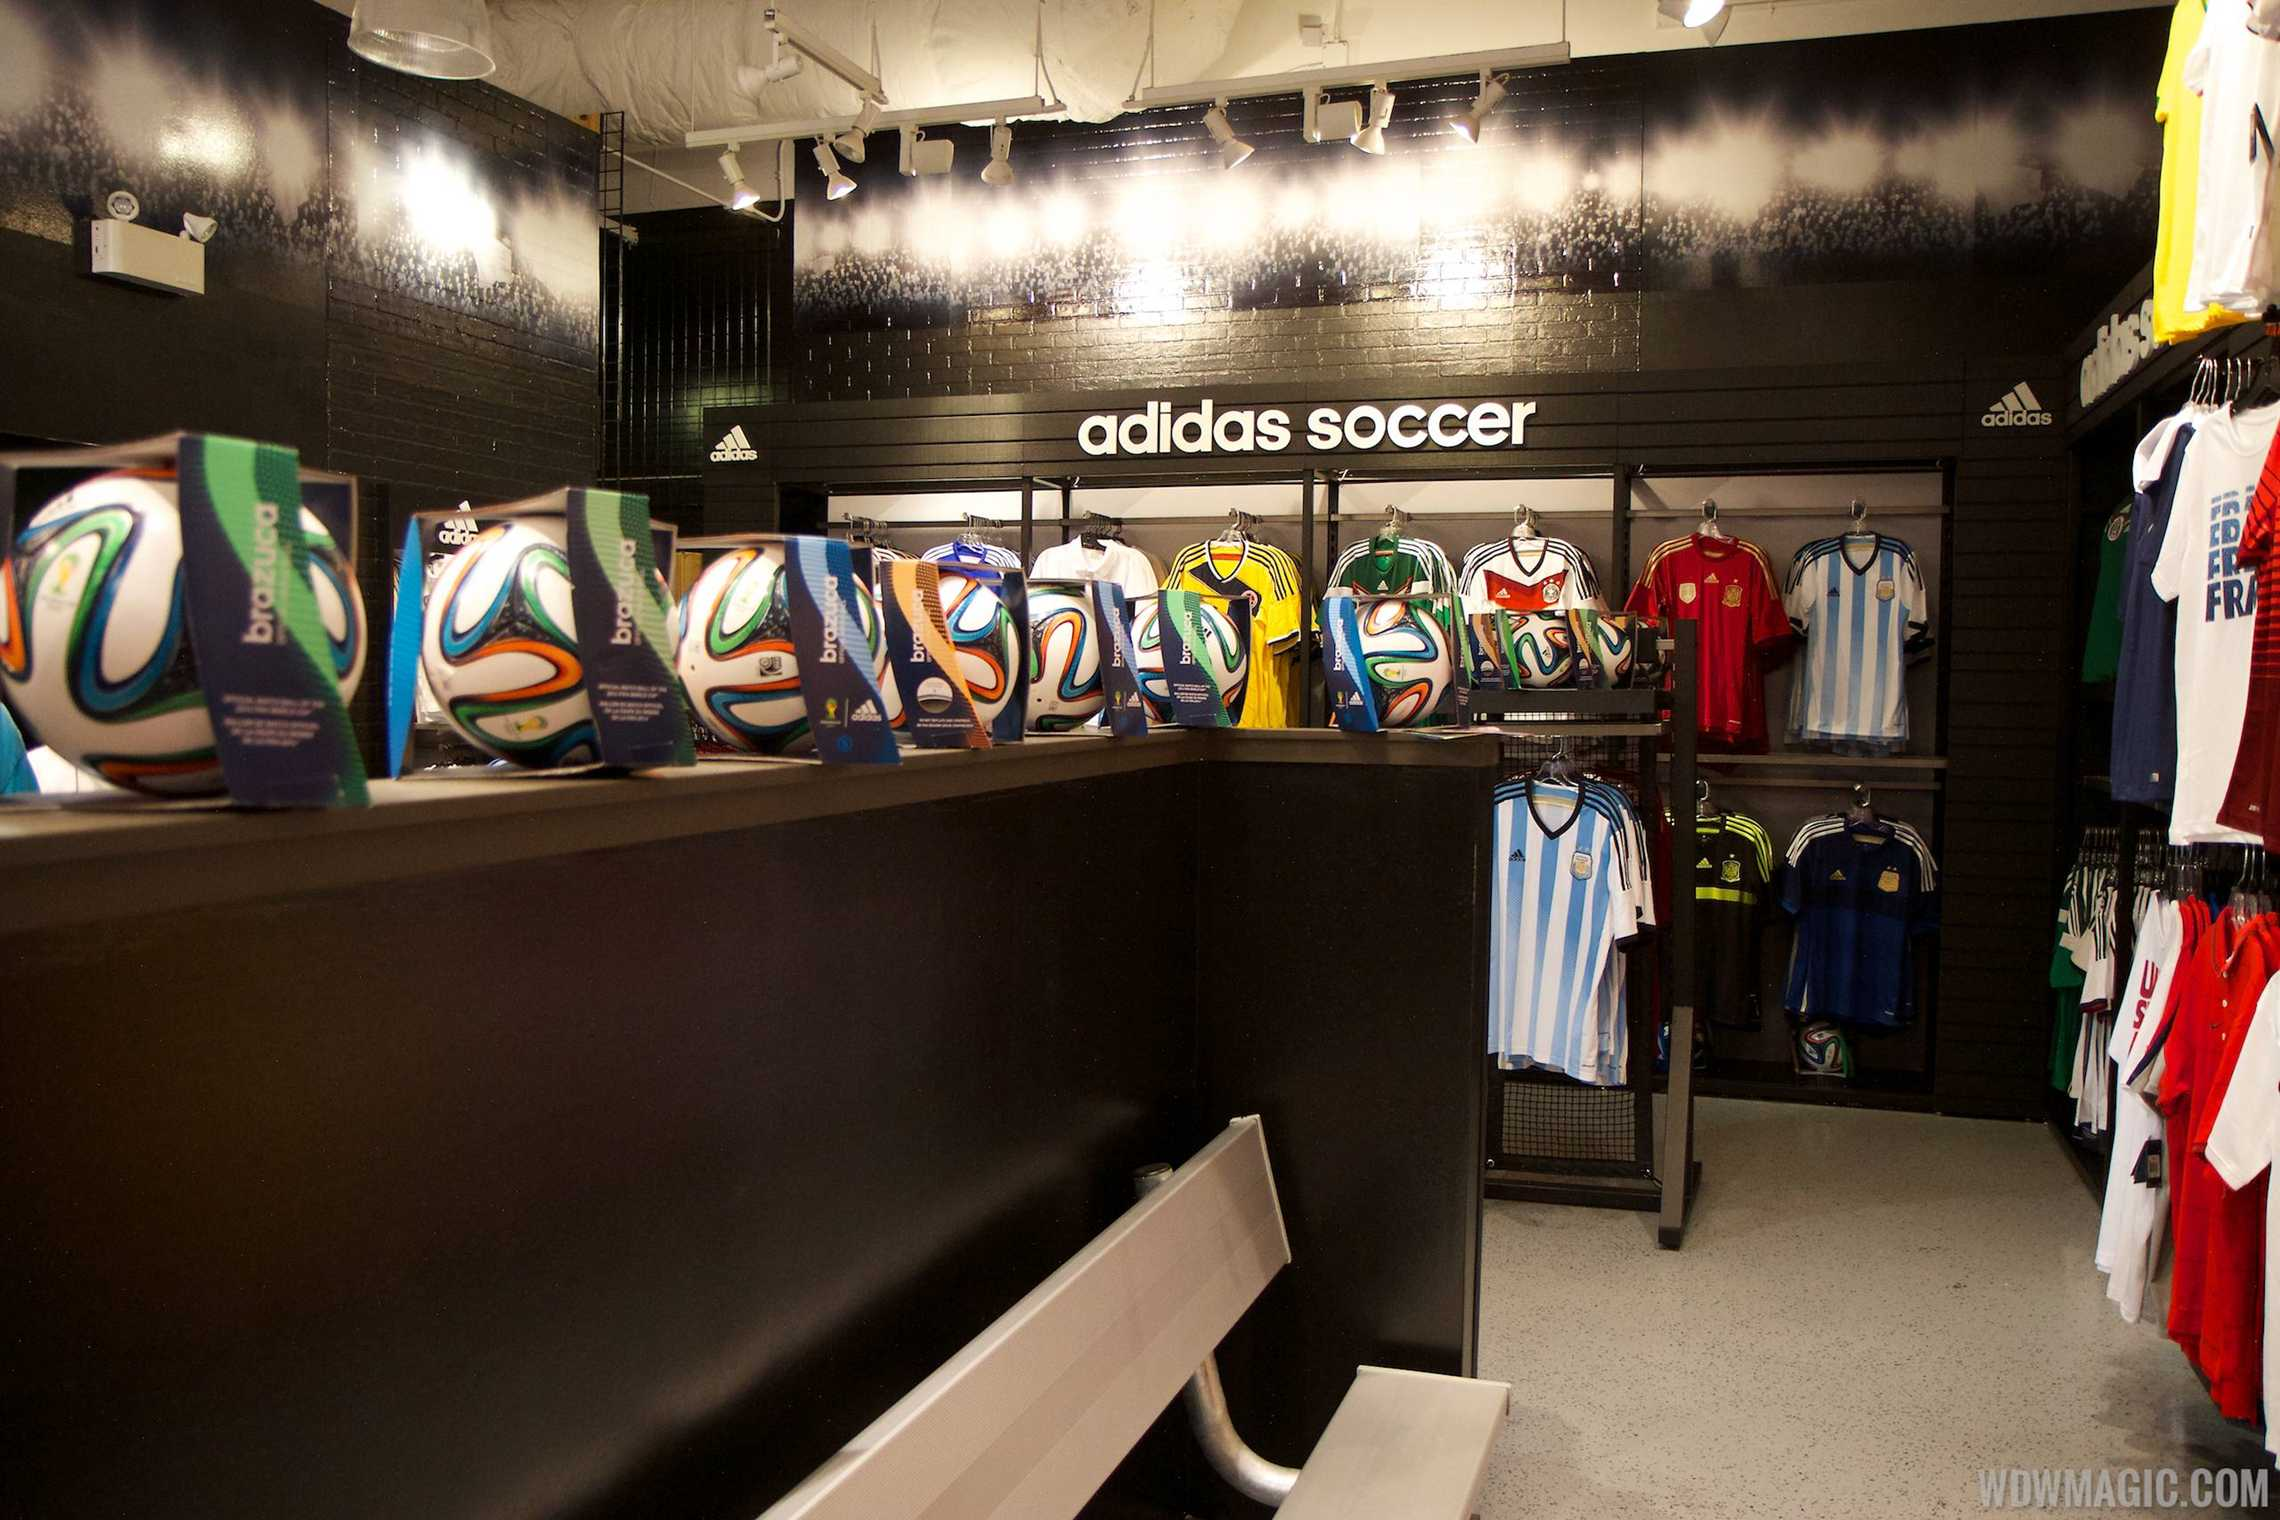 World Soccer Shop from regfree.ml Show the world your true colors and support your favorite international soccer team wherever you are with official merchandise from the World Soccer Shop at regfree.ml Game day jerseys, flags, scarves, and a huge variety of decorative accessories will make it easy for people to see what teams you support.